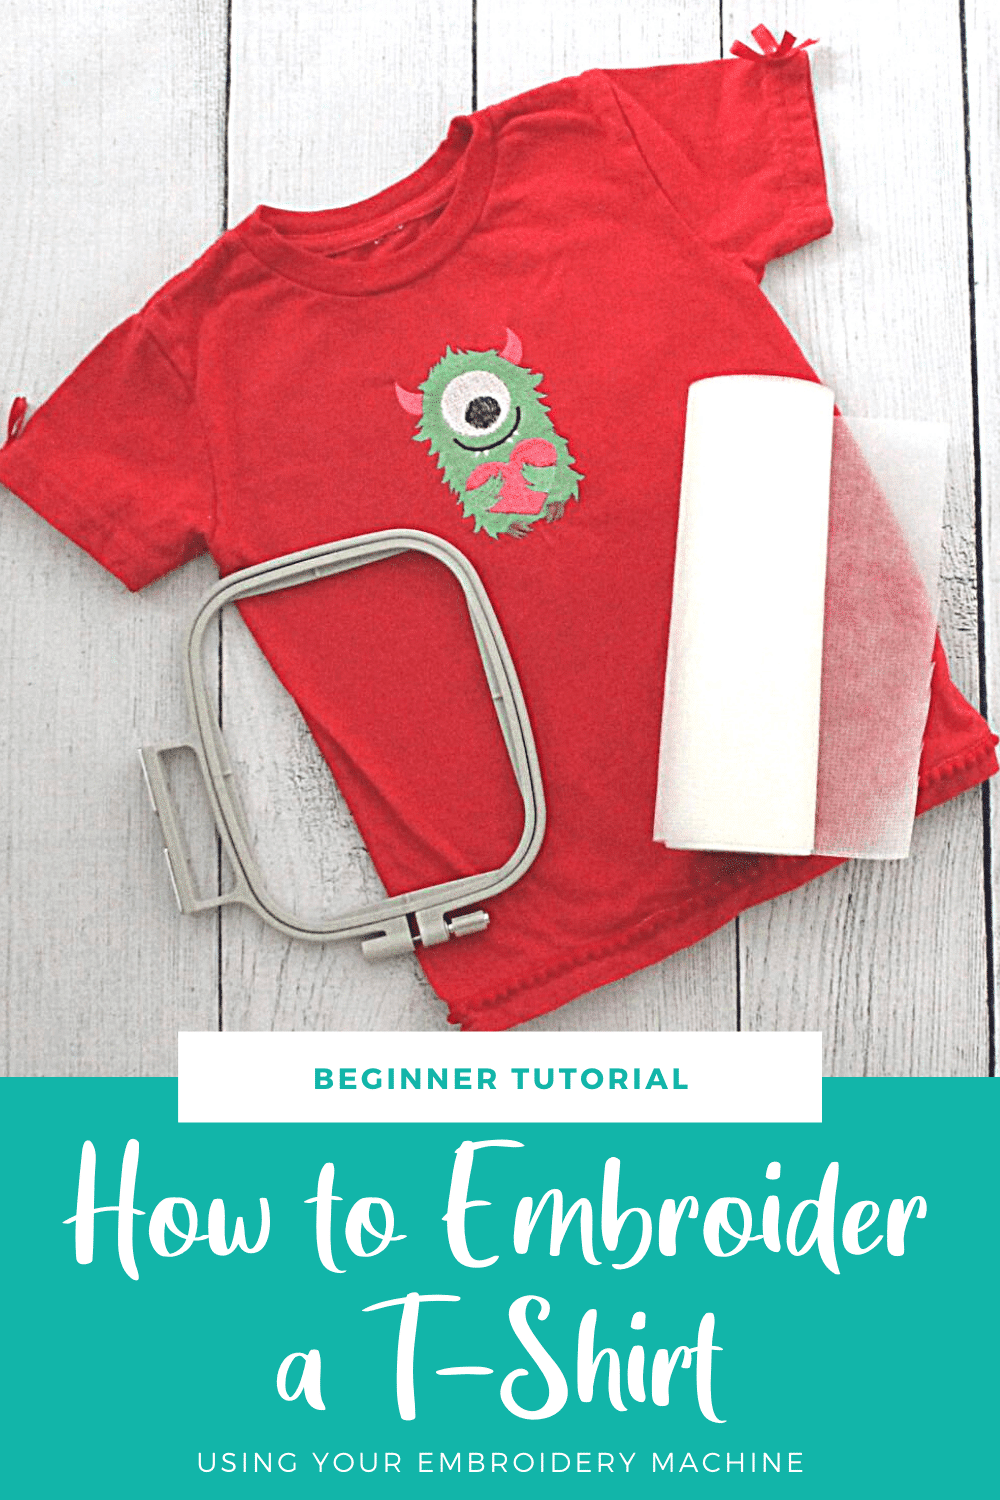 How to embroider a t-shirt